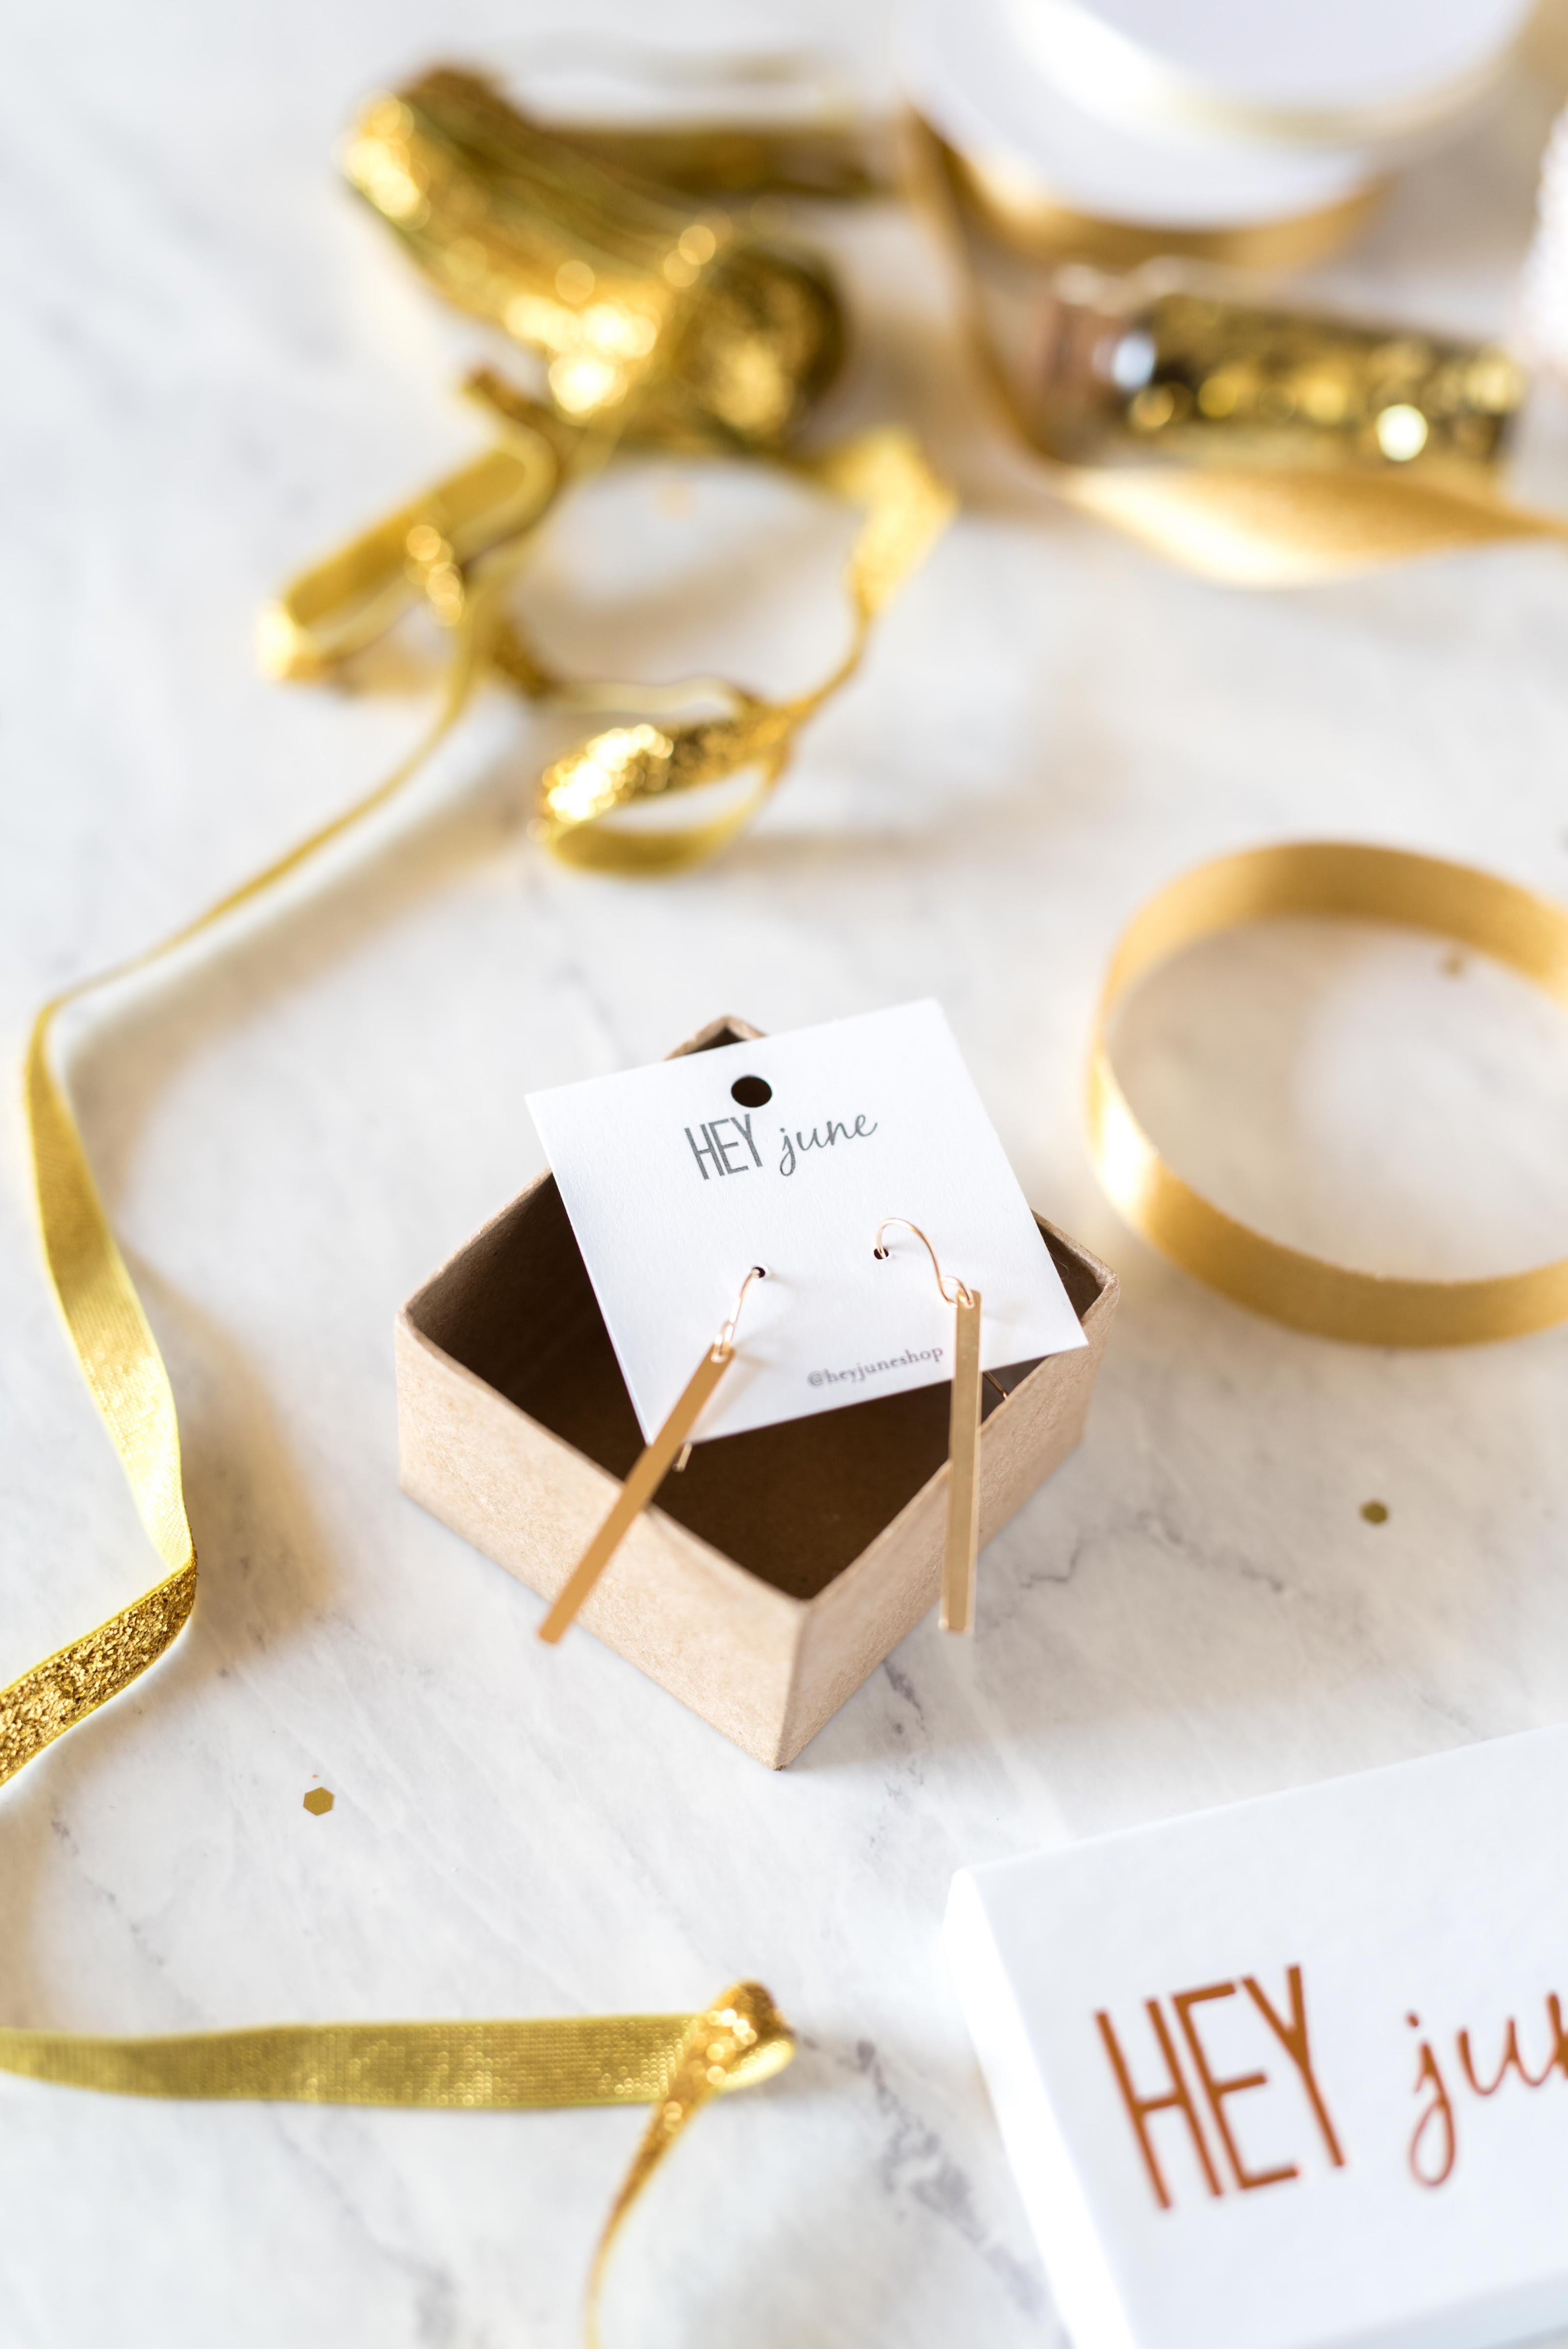 Shop Small Series: Hey June Jewelry | Gina Chong